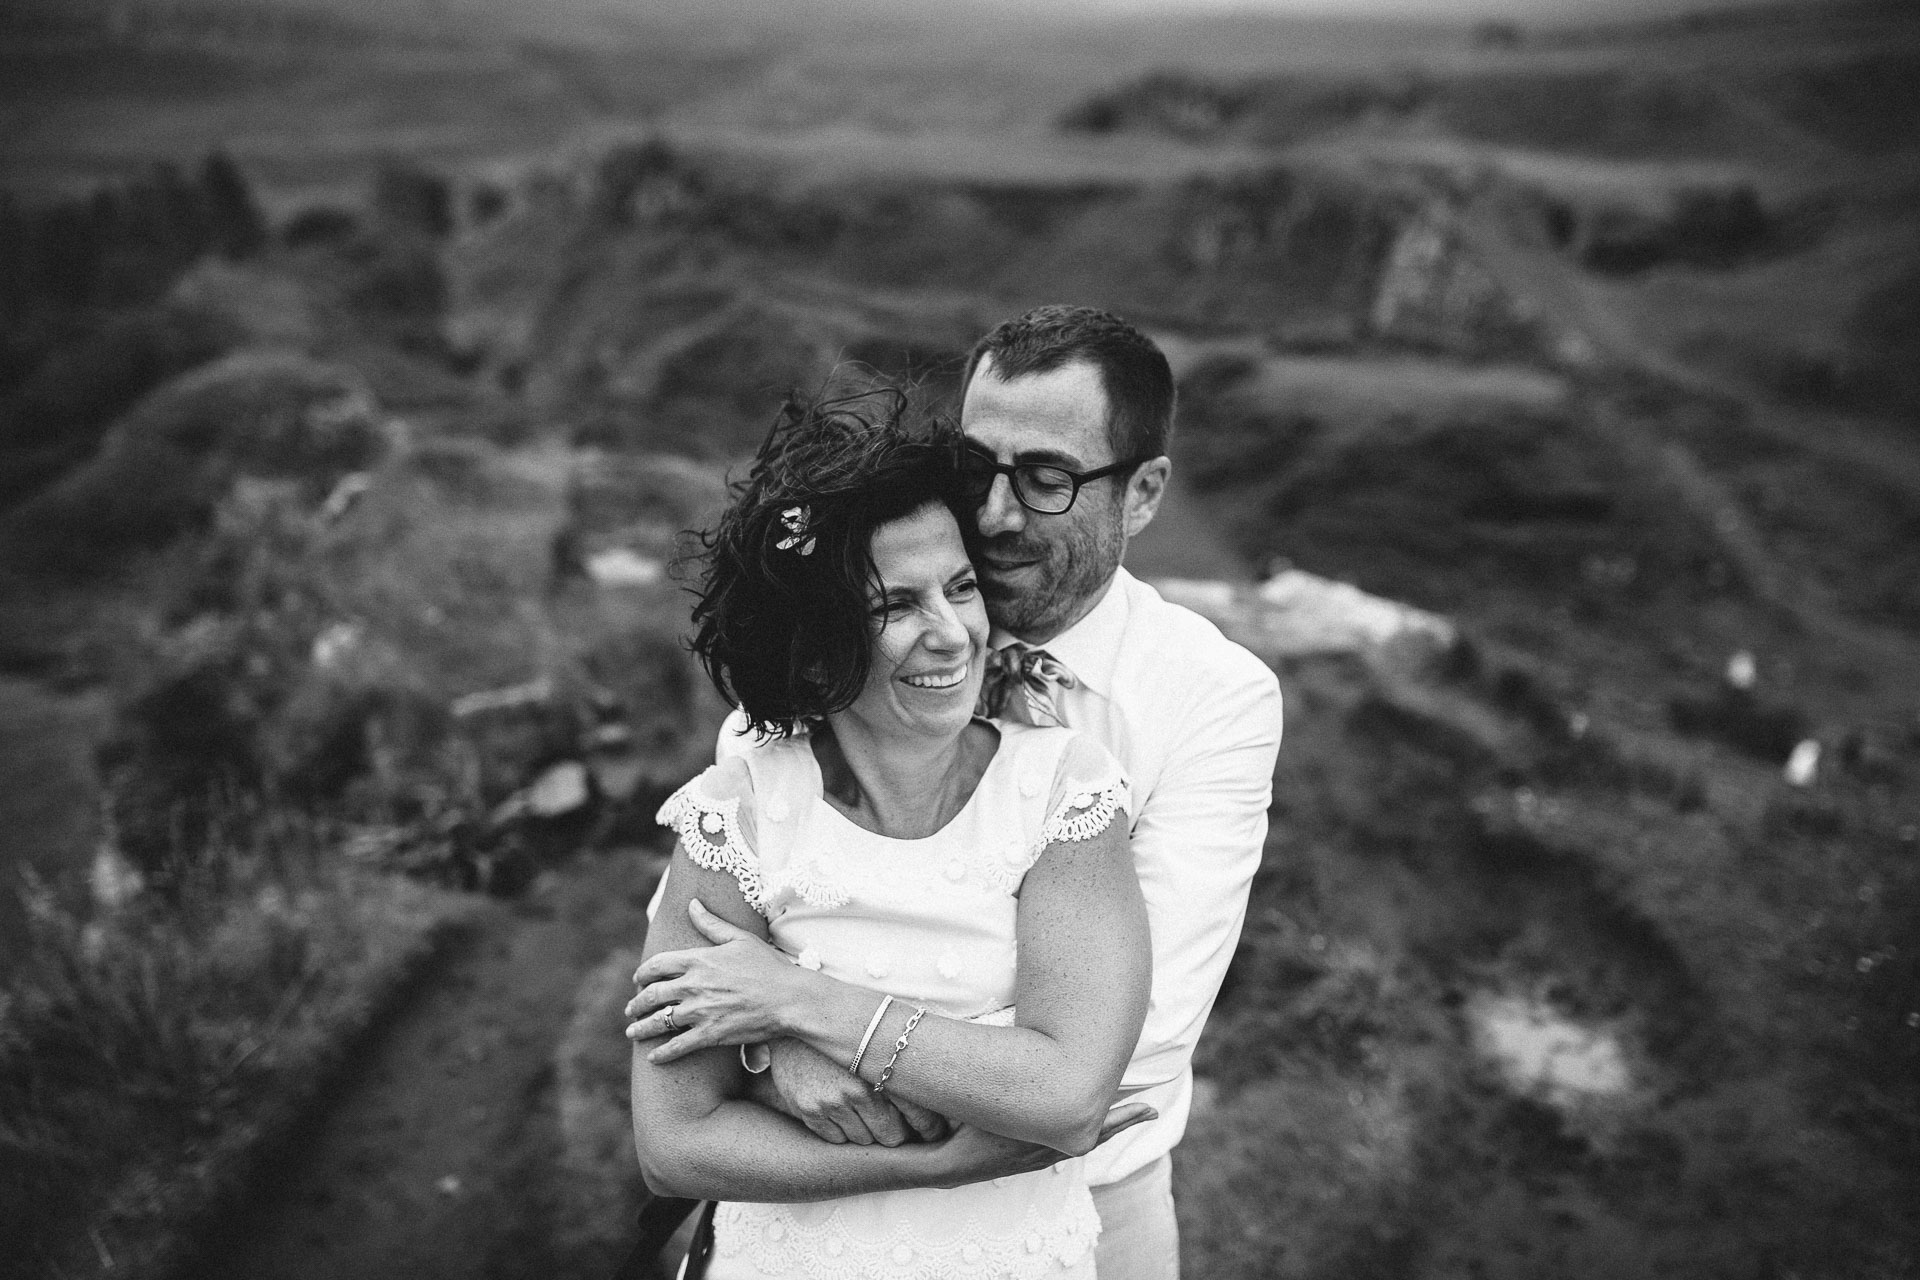 Megan_Matt_Elopement_IntimateWedding_Scotland_IsleOfSkye_JeanLaurentGaudy_098